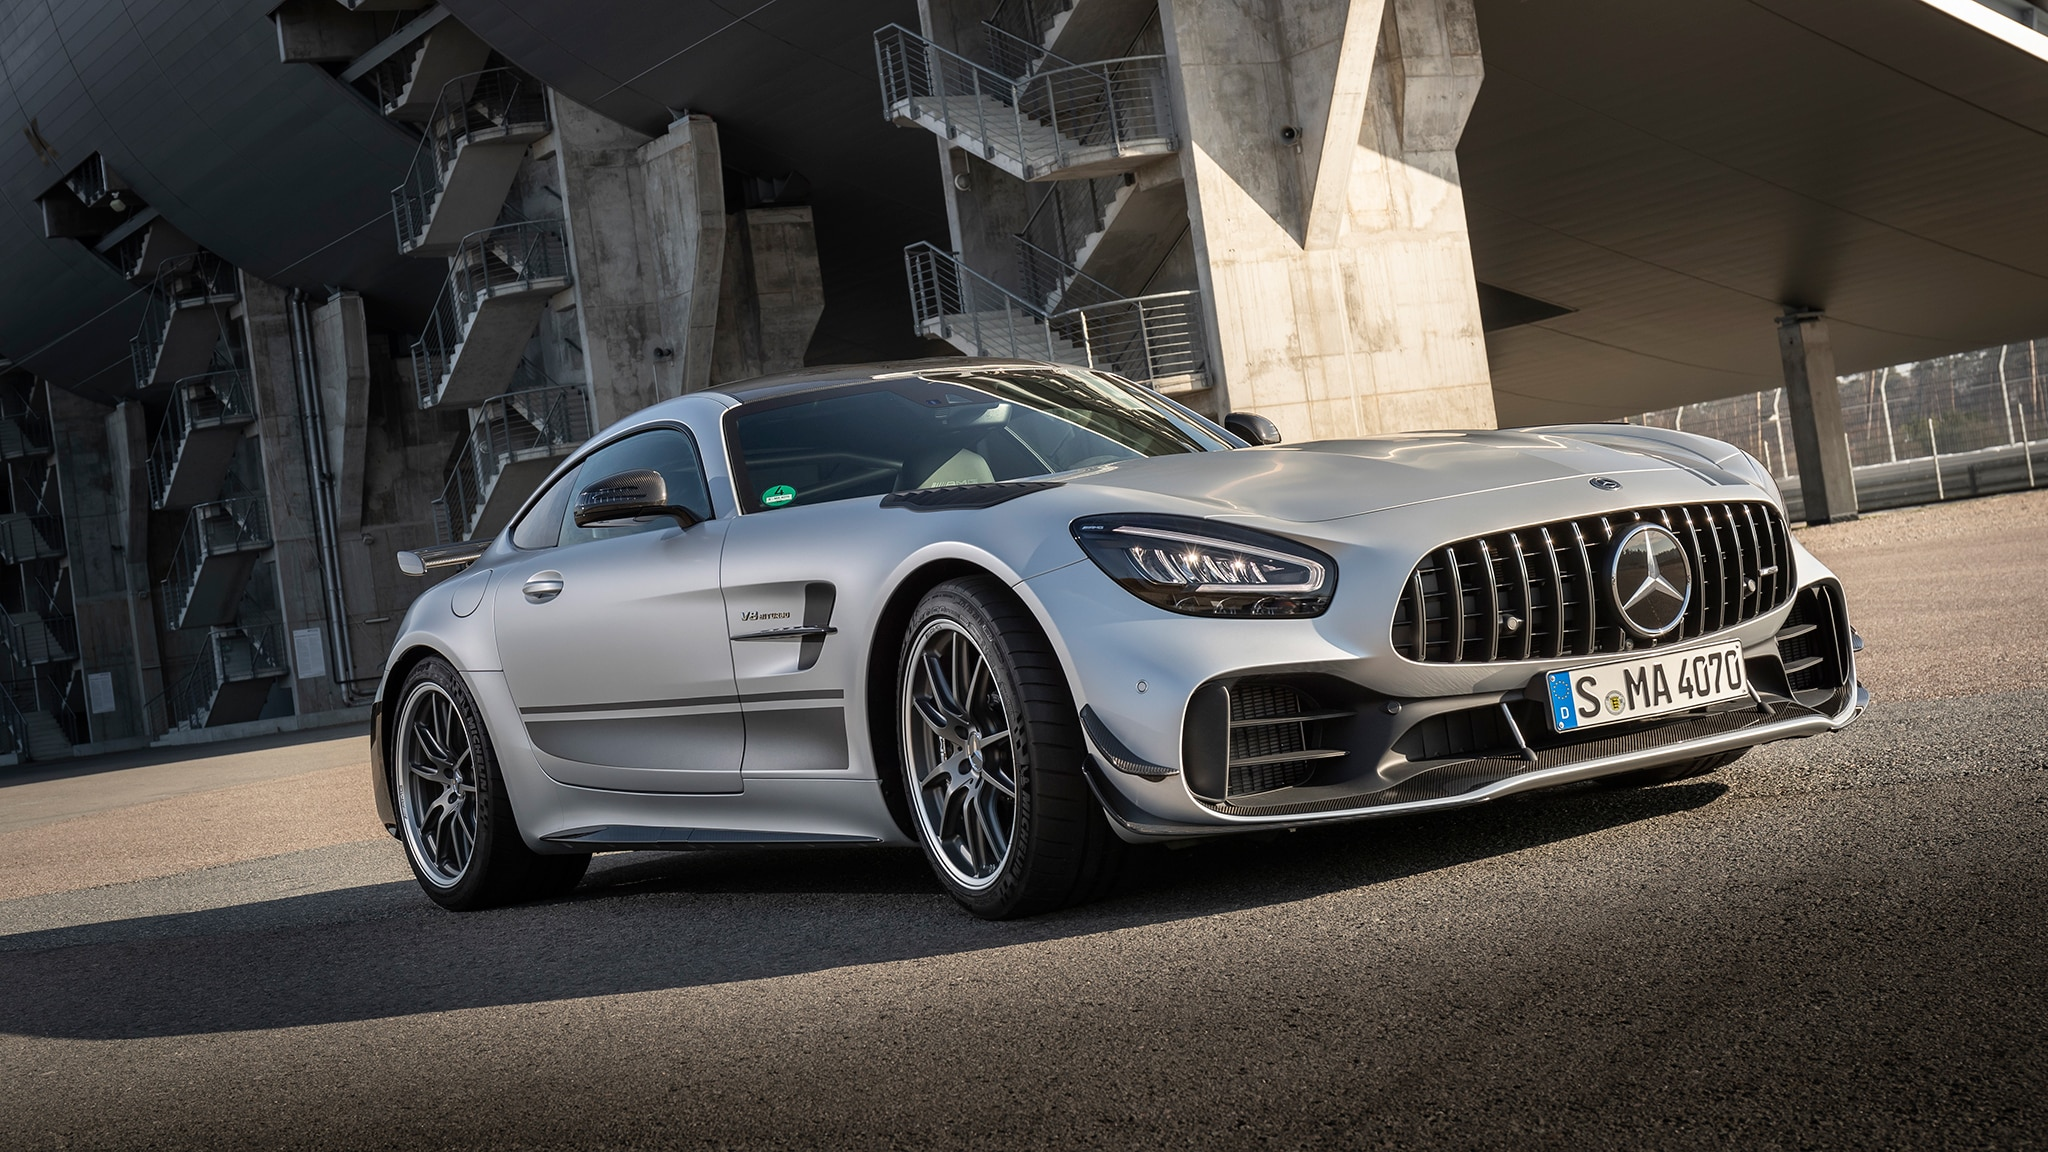 2020 Mercedes-AMG GT R Pro First Drive: Serious Drivers